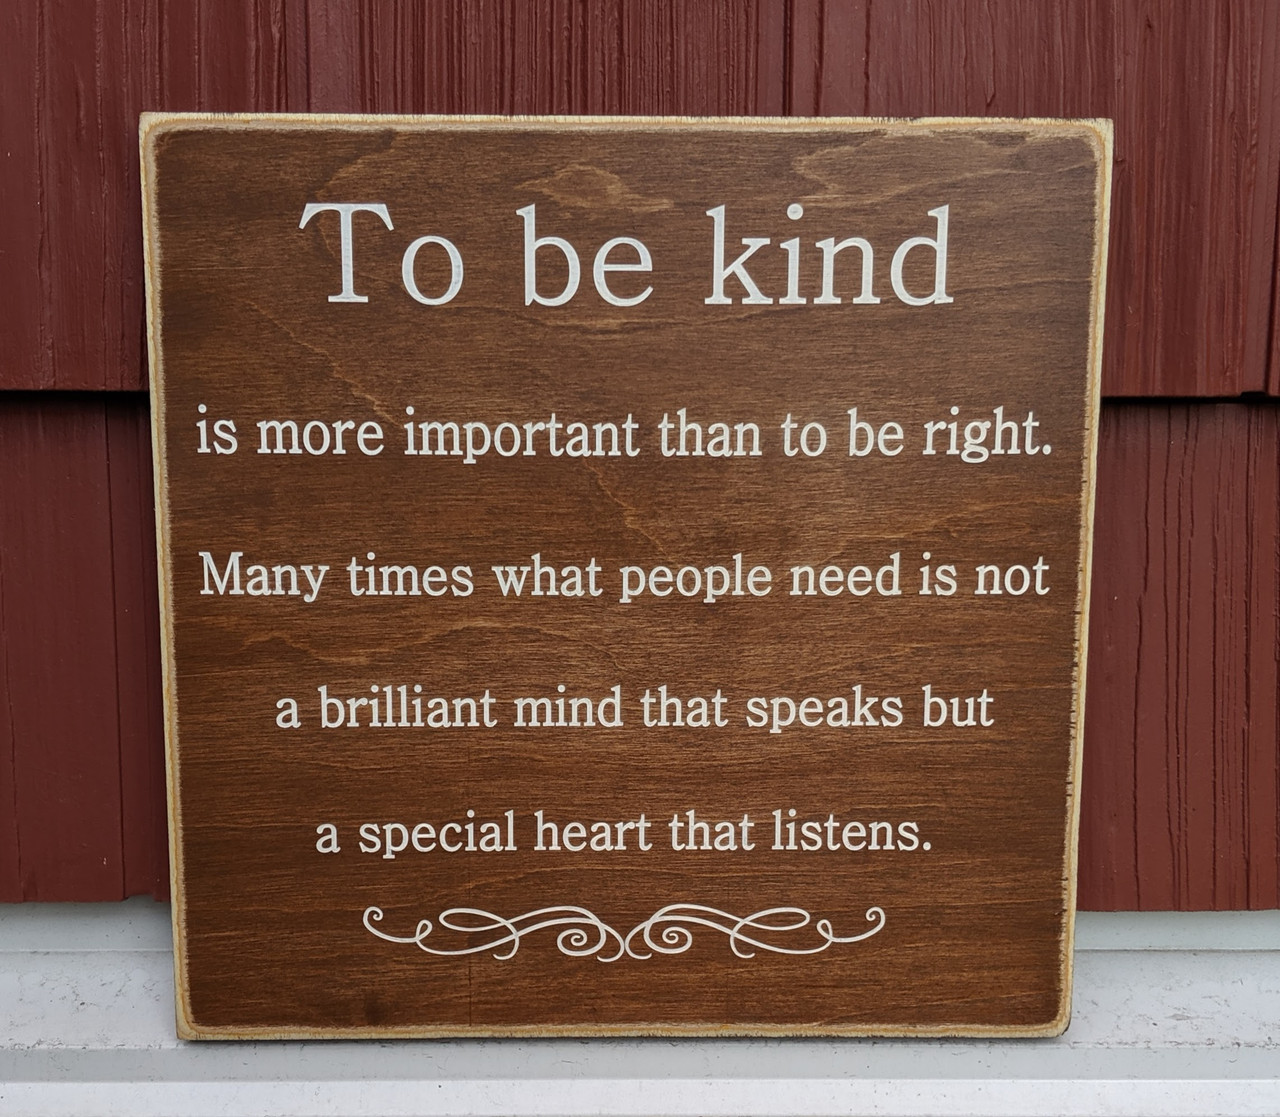 To be kind is more important than to be right - wood sign